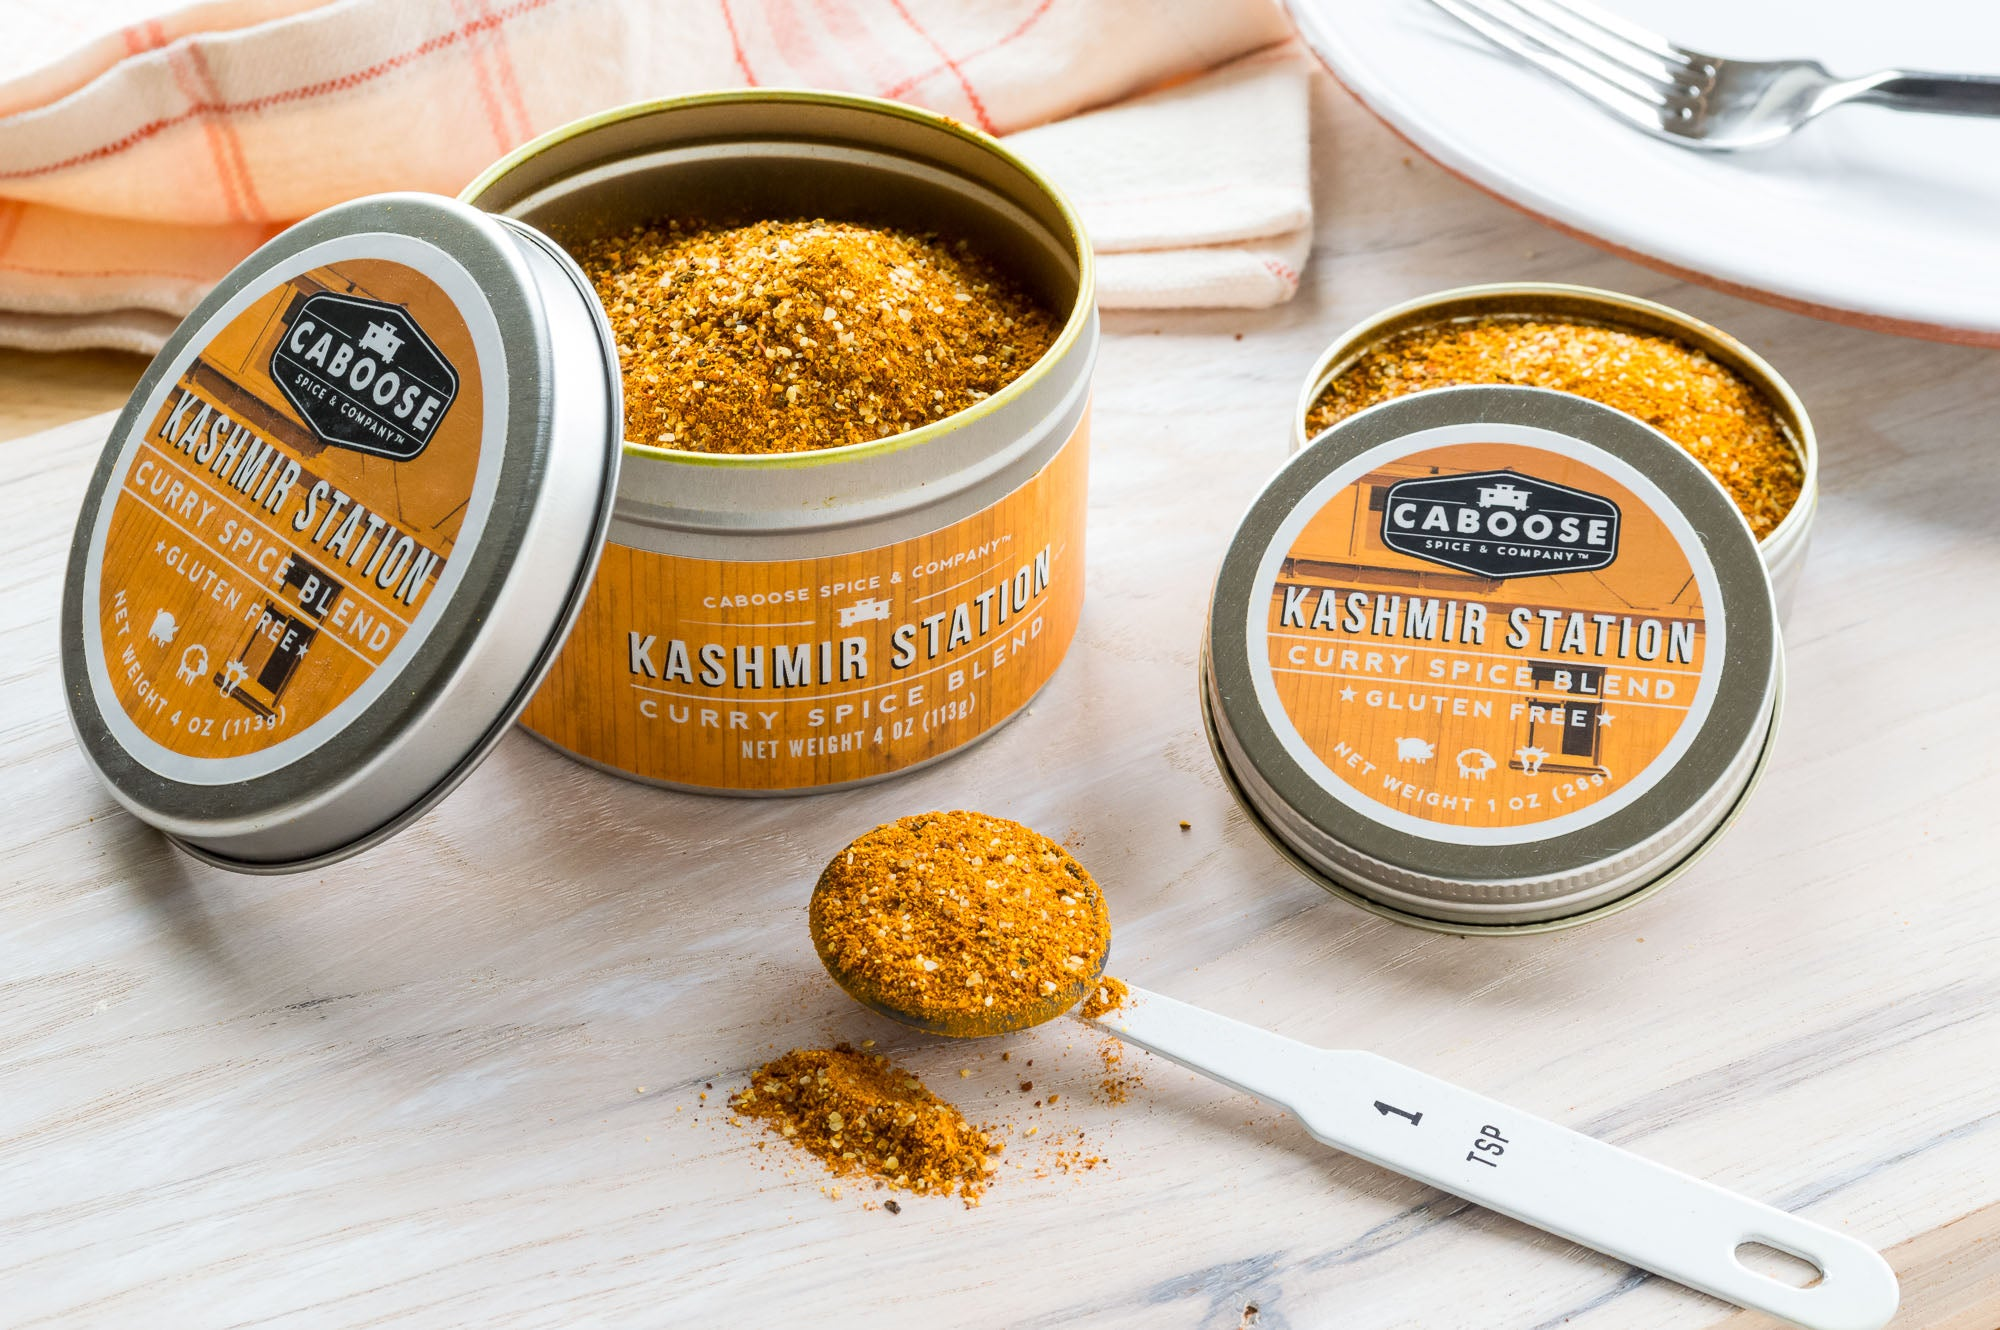 Meet Kashmir Station Curry Spice Blend: Makes Curry Easy!